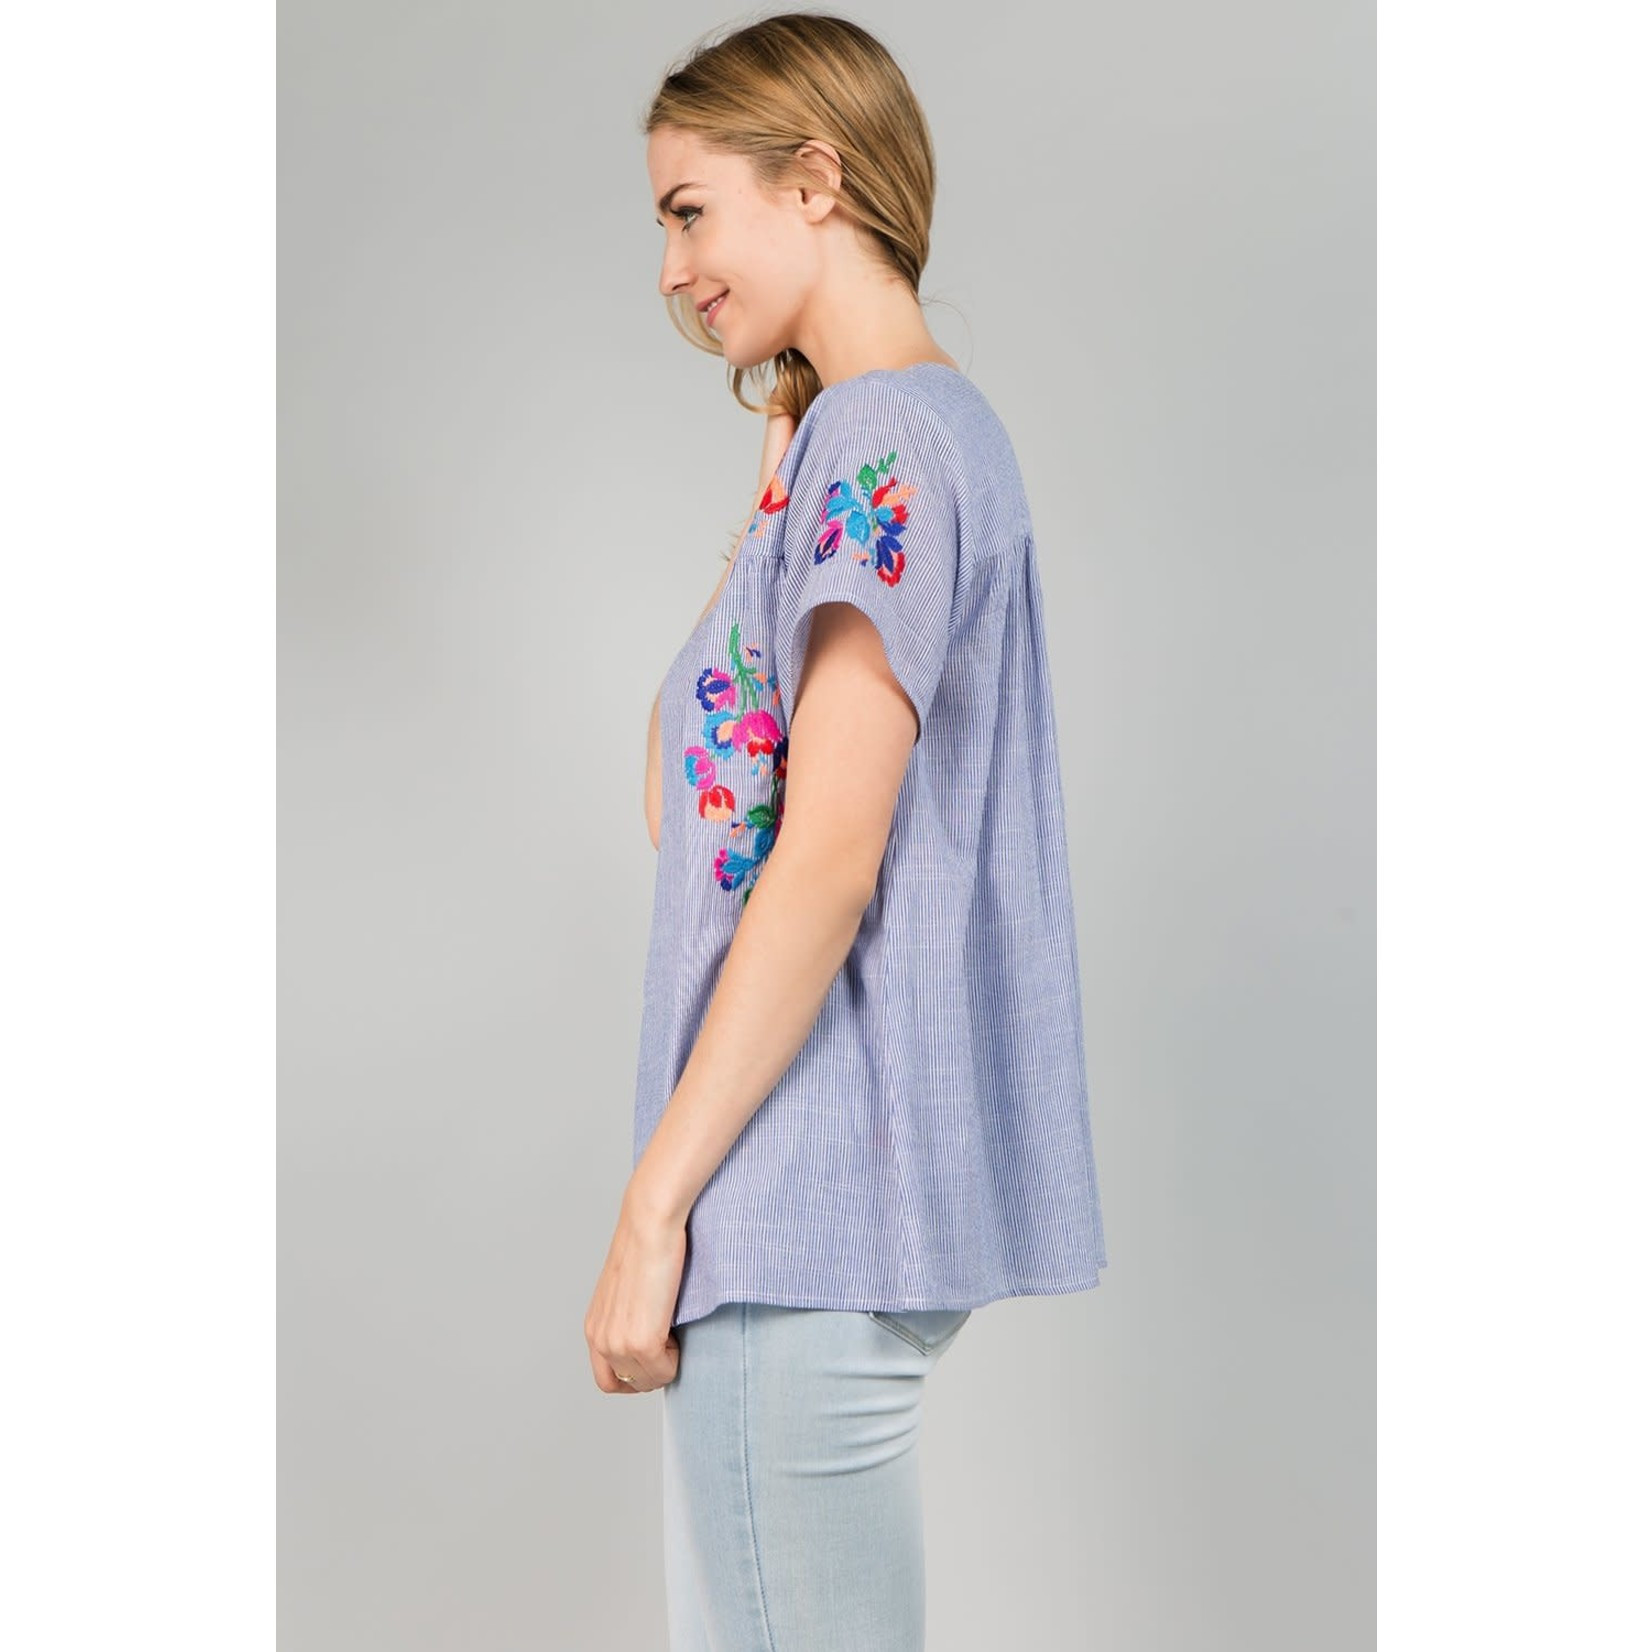 Top w/ Floral Embroidery Blue Stripe